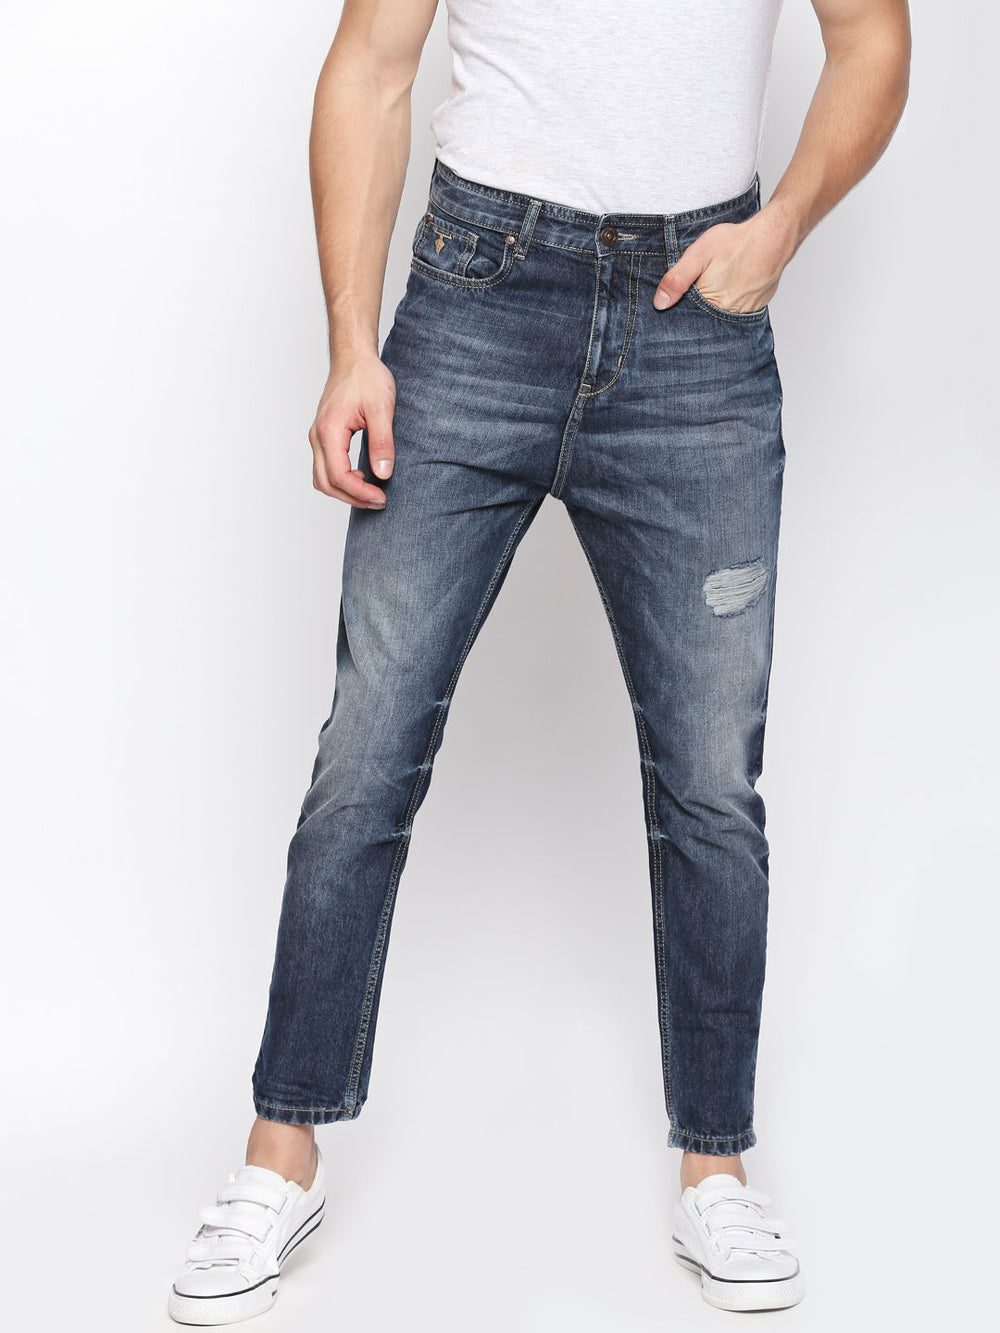 Disrupt Blue 100% Cotton Regular Fit Jeans For Men's